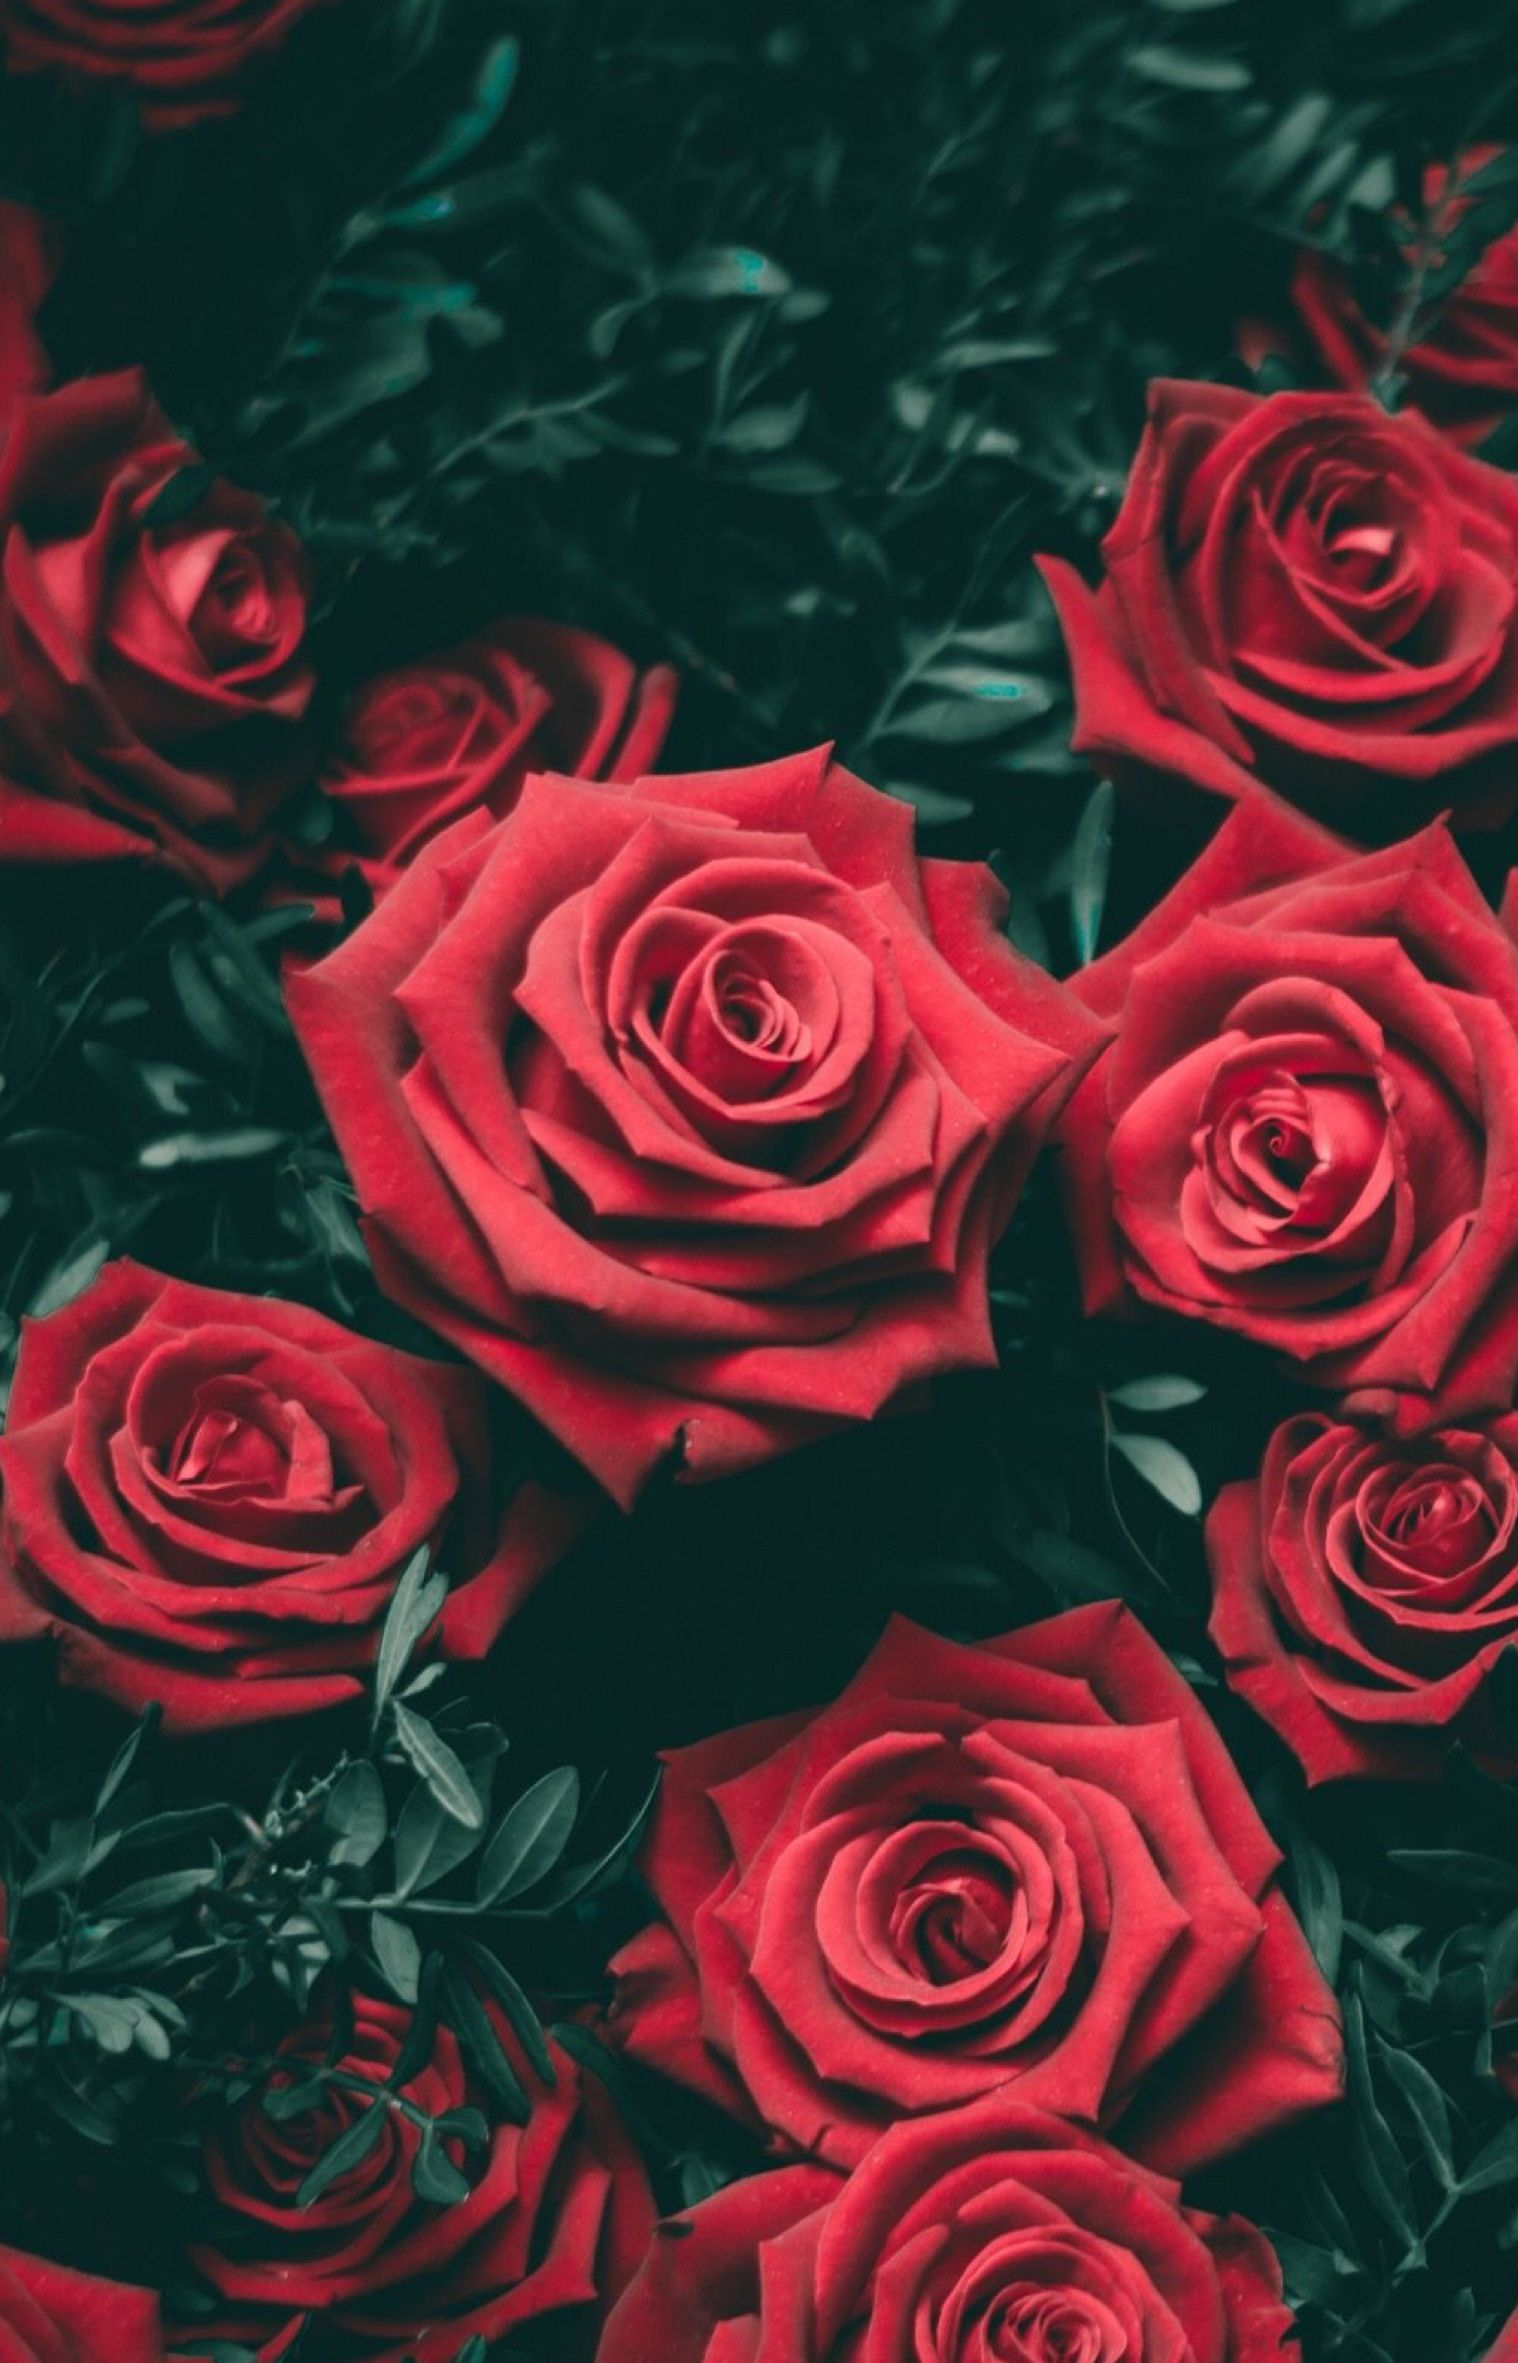 Background Red Roses Wallpaper Flower Iphone Wallpaper Rose